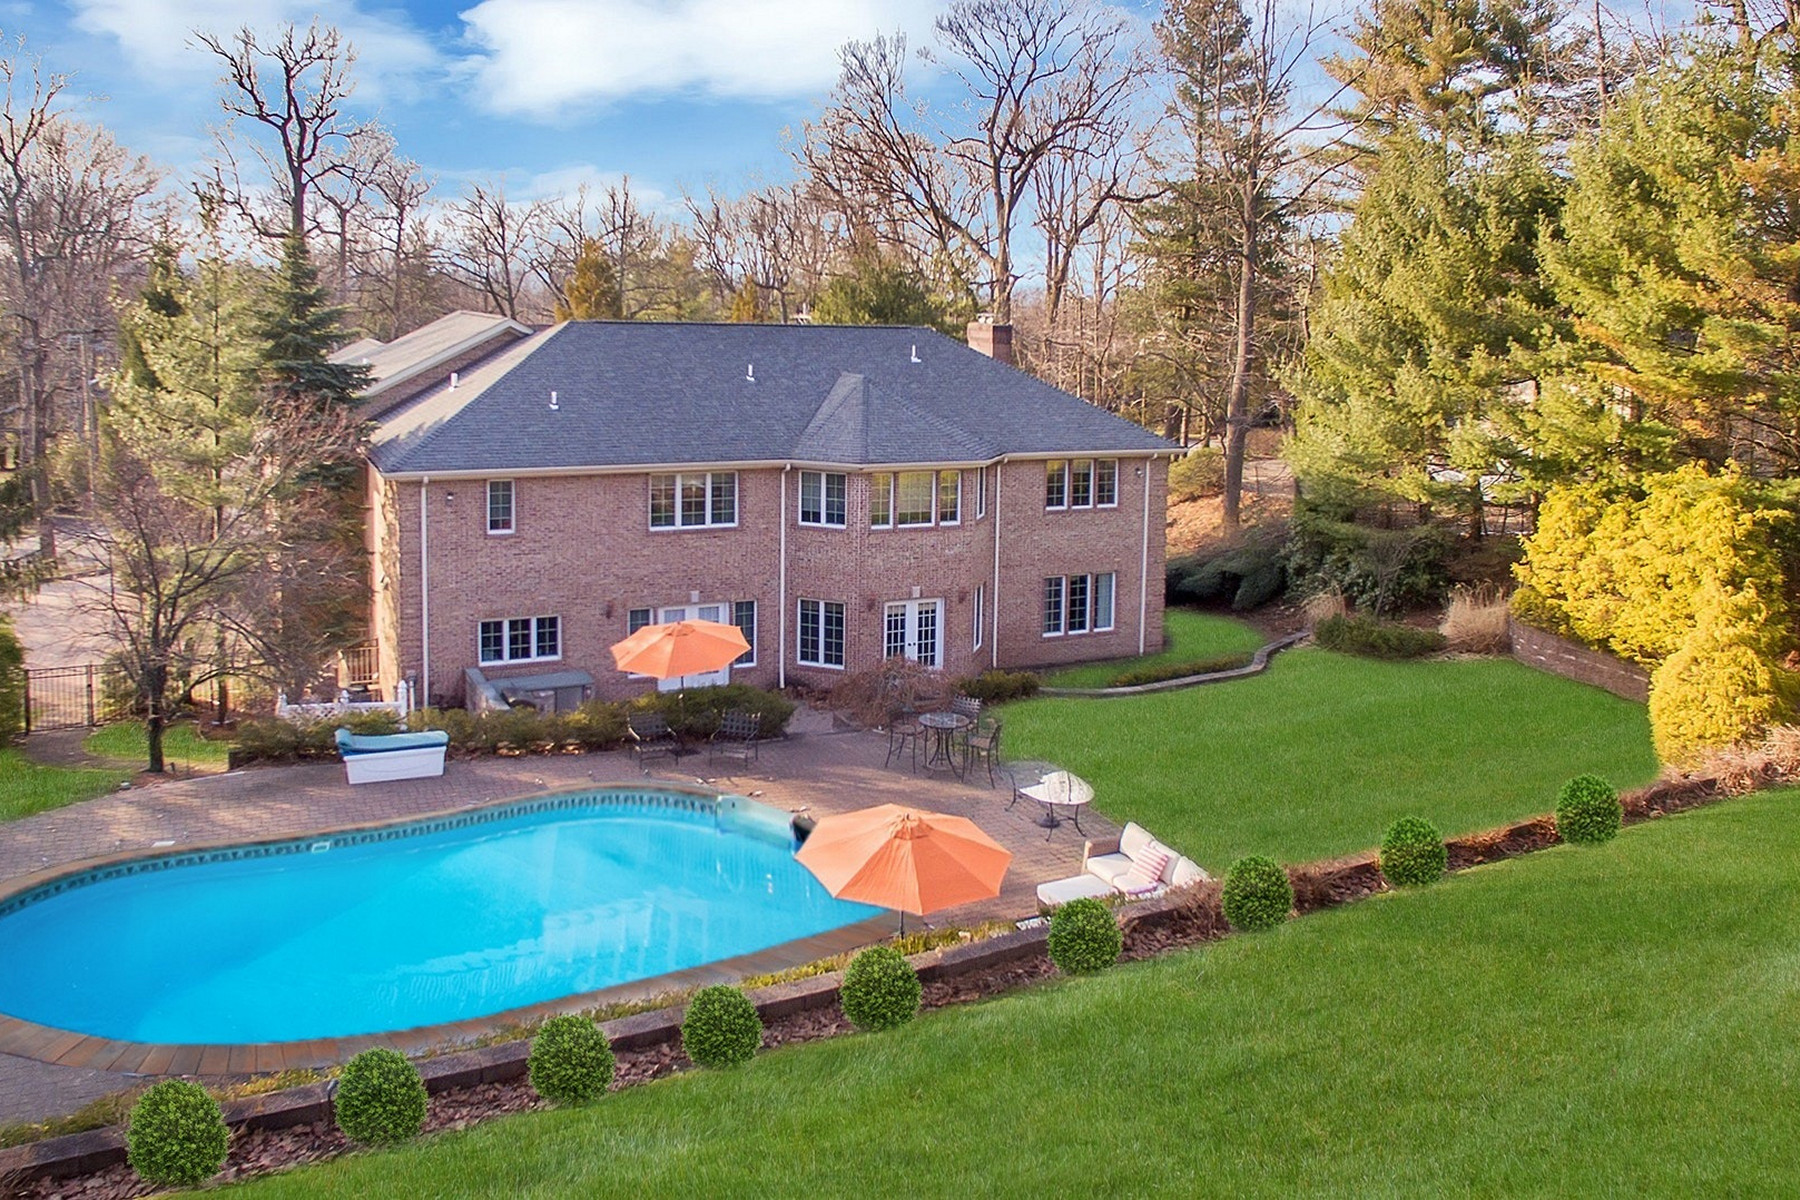 Single Family Homes for Active at Elegant Colonial 290 Devon Road Tenafly, New Jersey 07670 United States